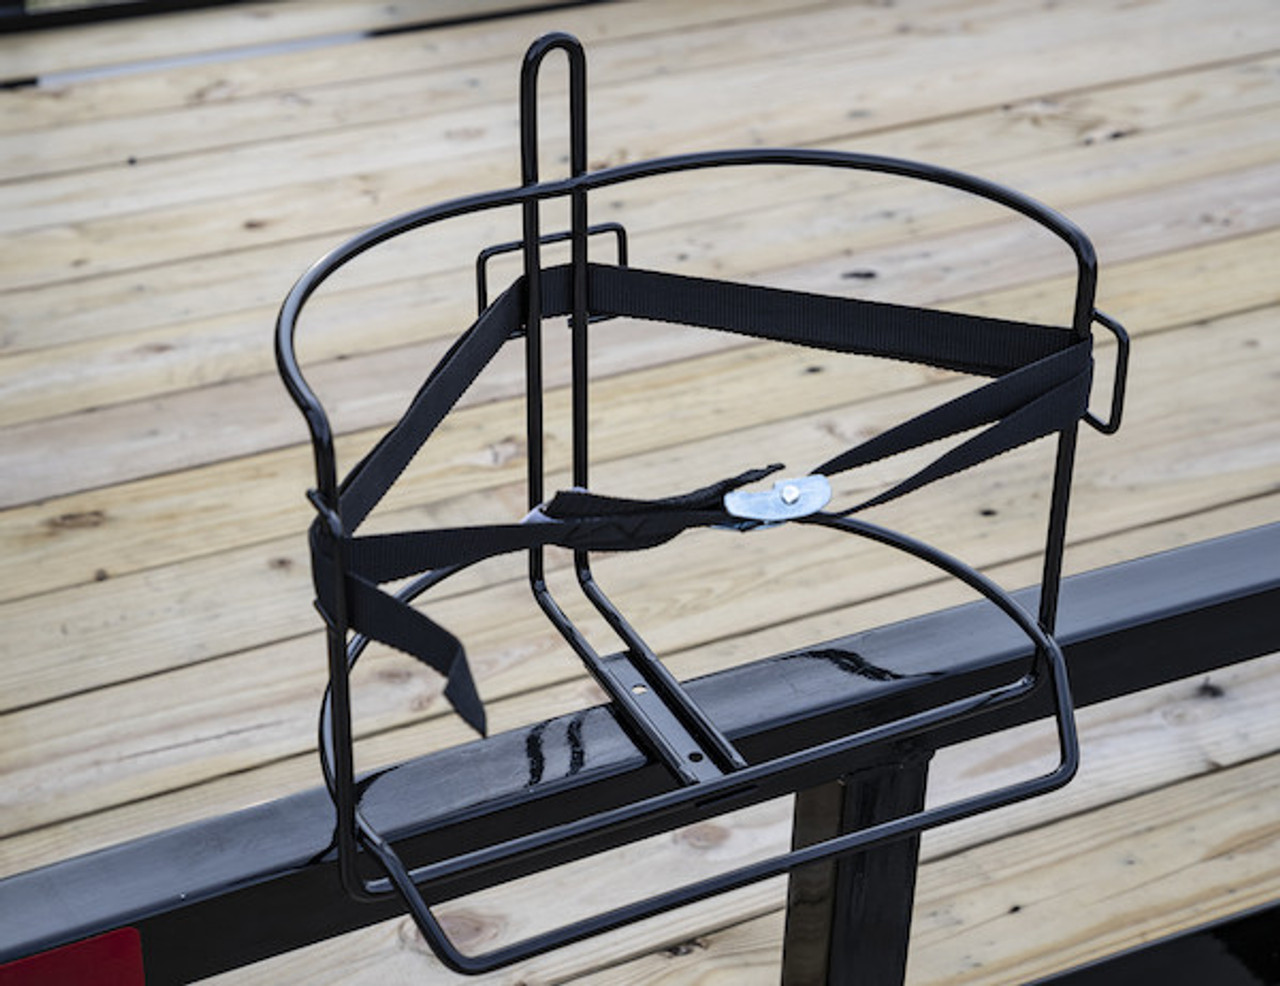 Buyers 5201007 5 Gallon Wire Form Water Cooler Rack for Trailers Picture # 3